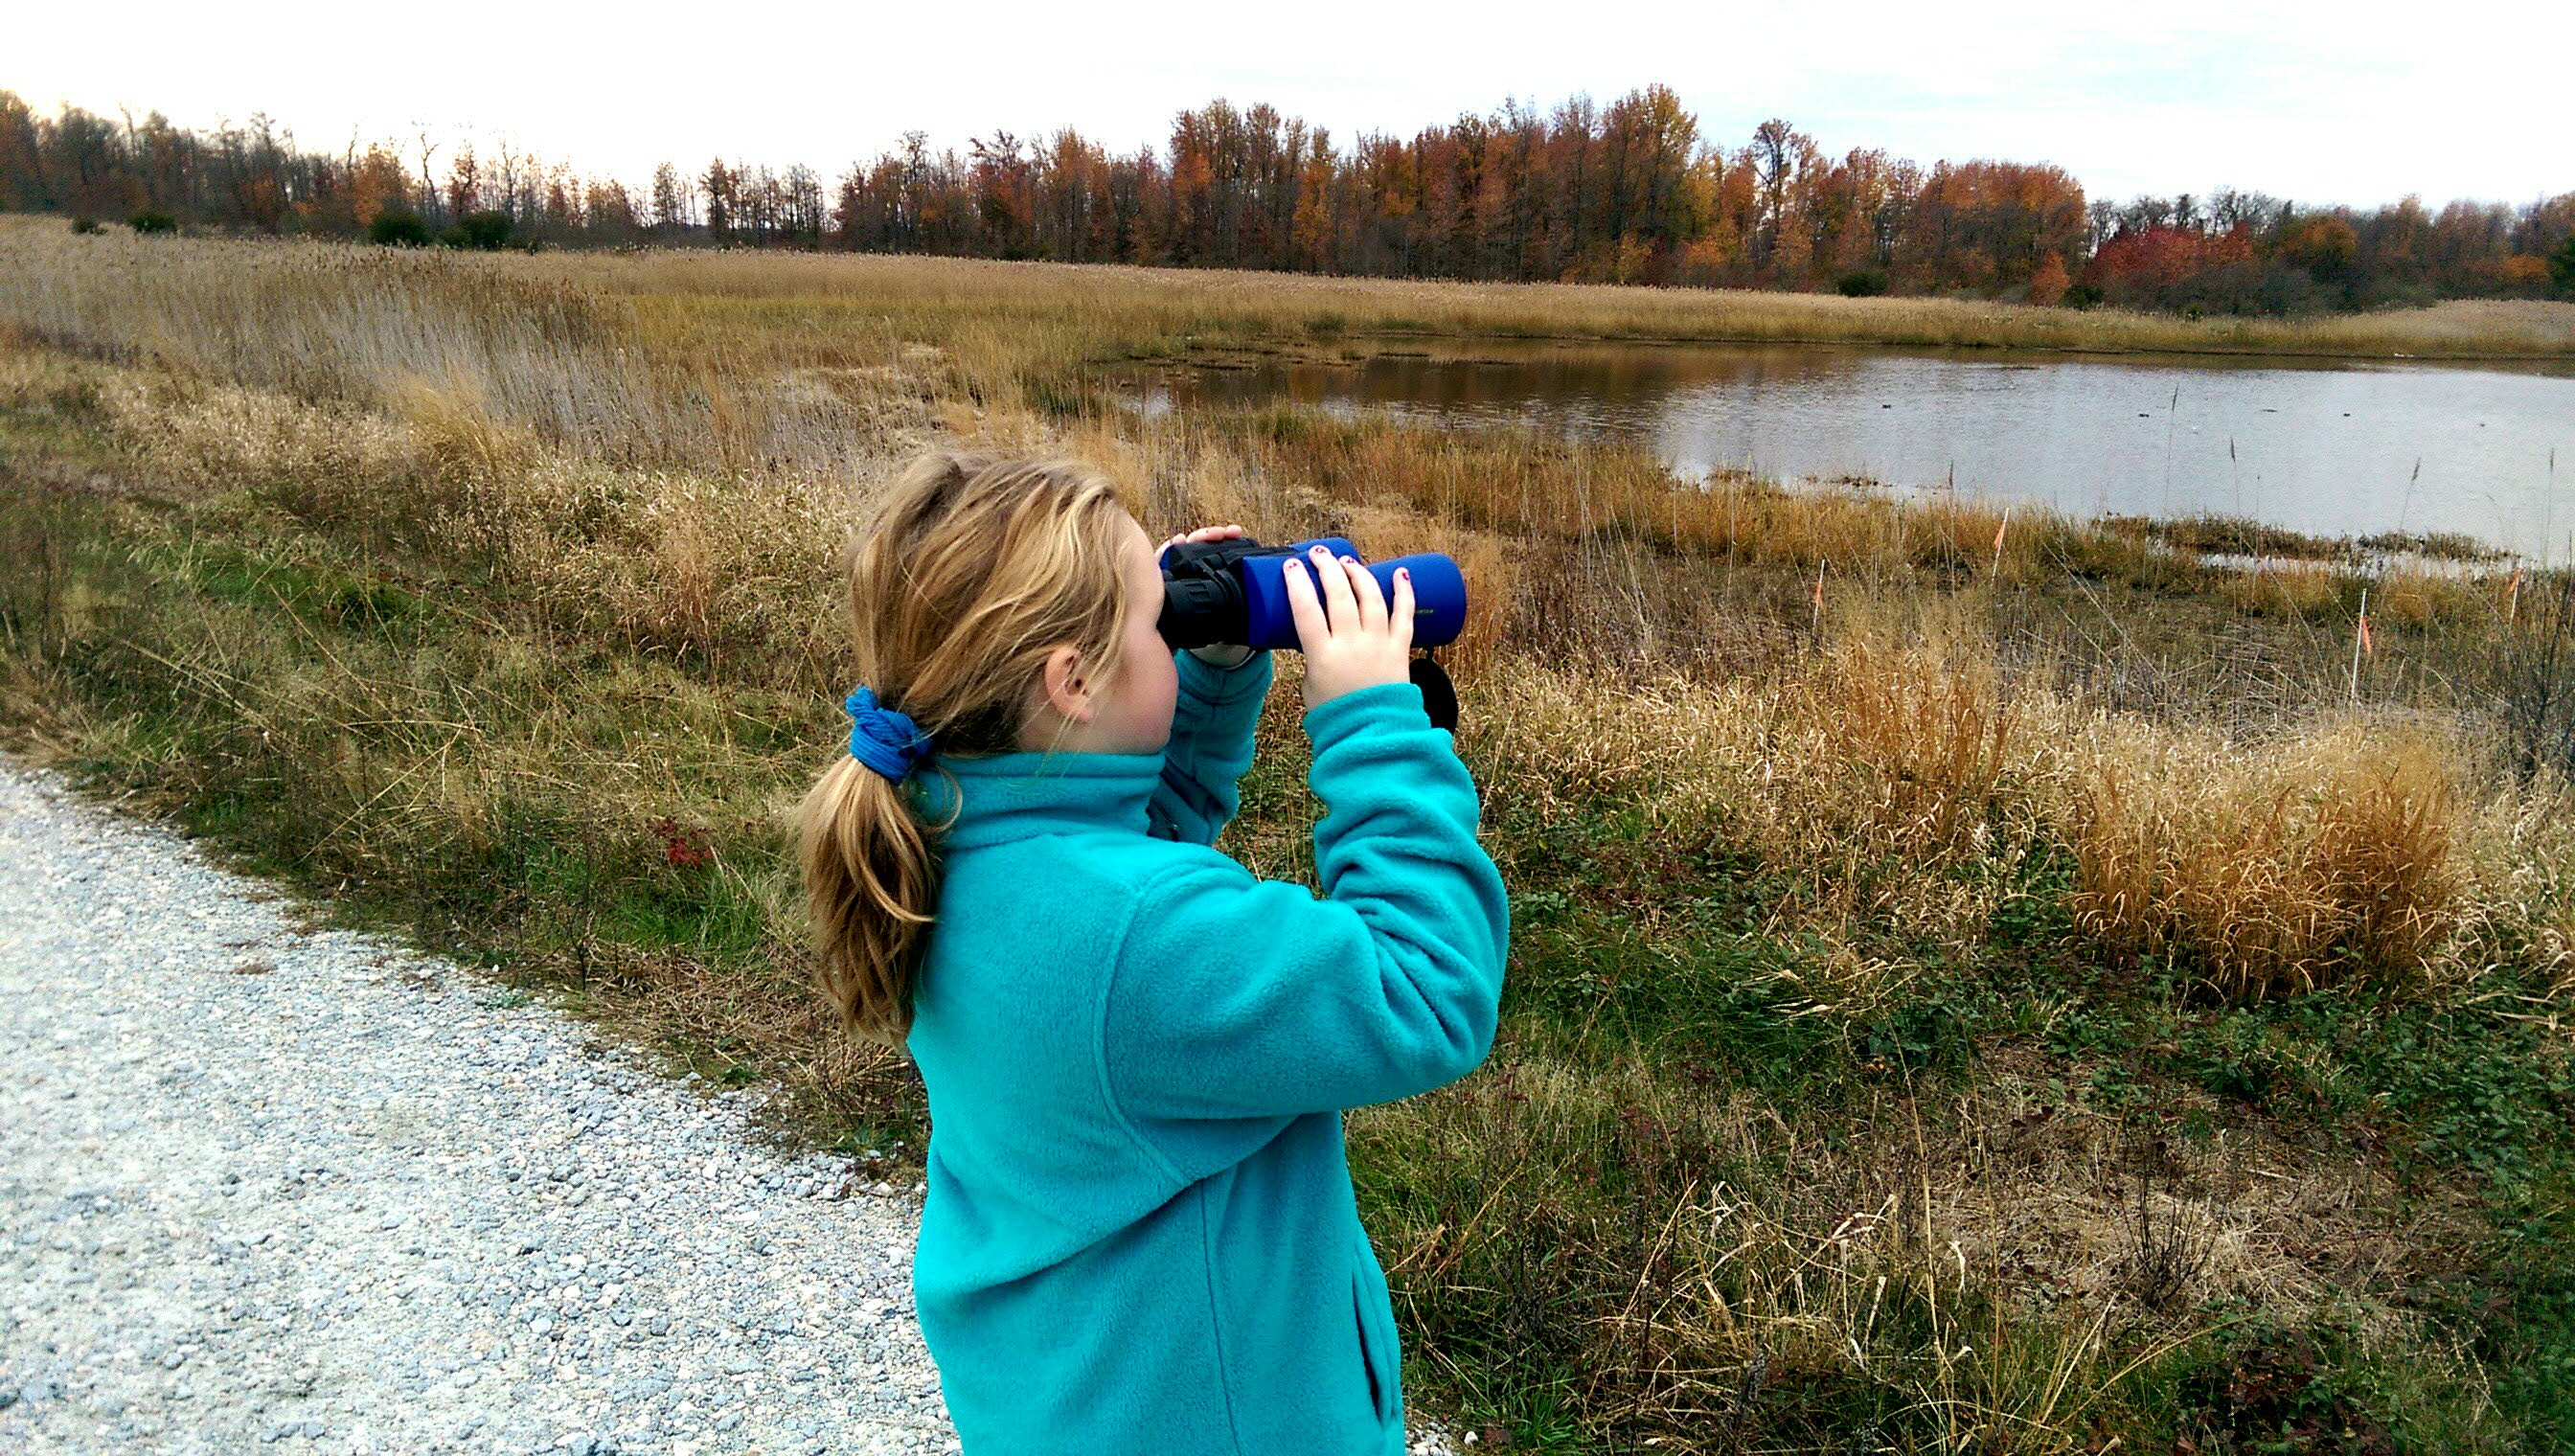 A 4-H member of the Junior Duck Stamp Club observes waterfowl in its natural habitat